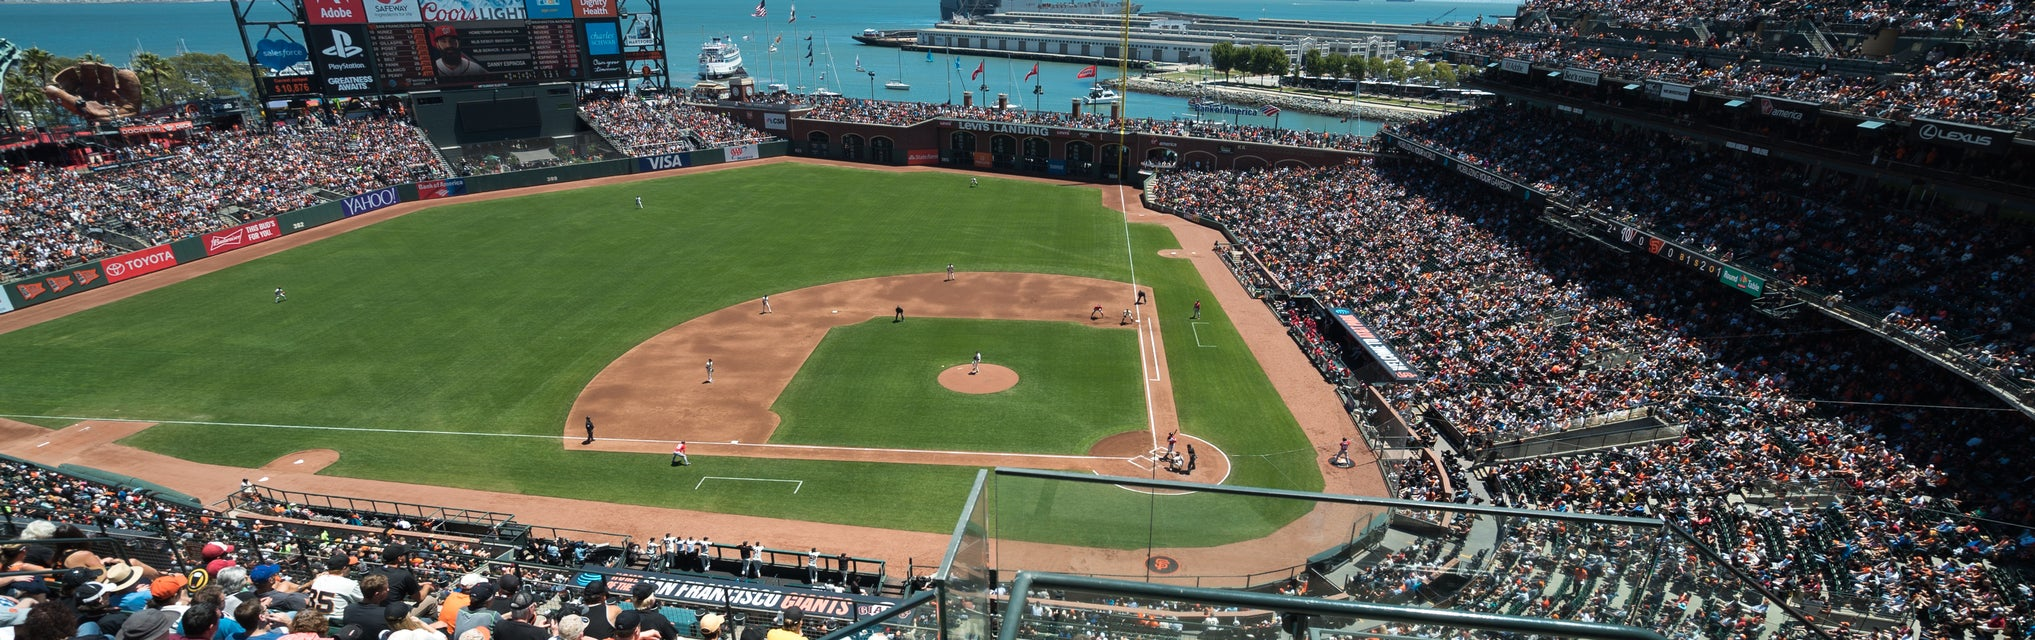 Seat view from View Reserve Infield